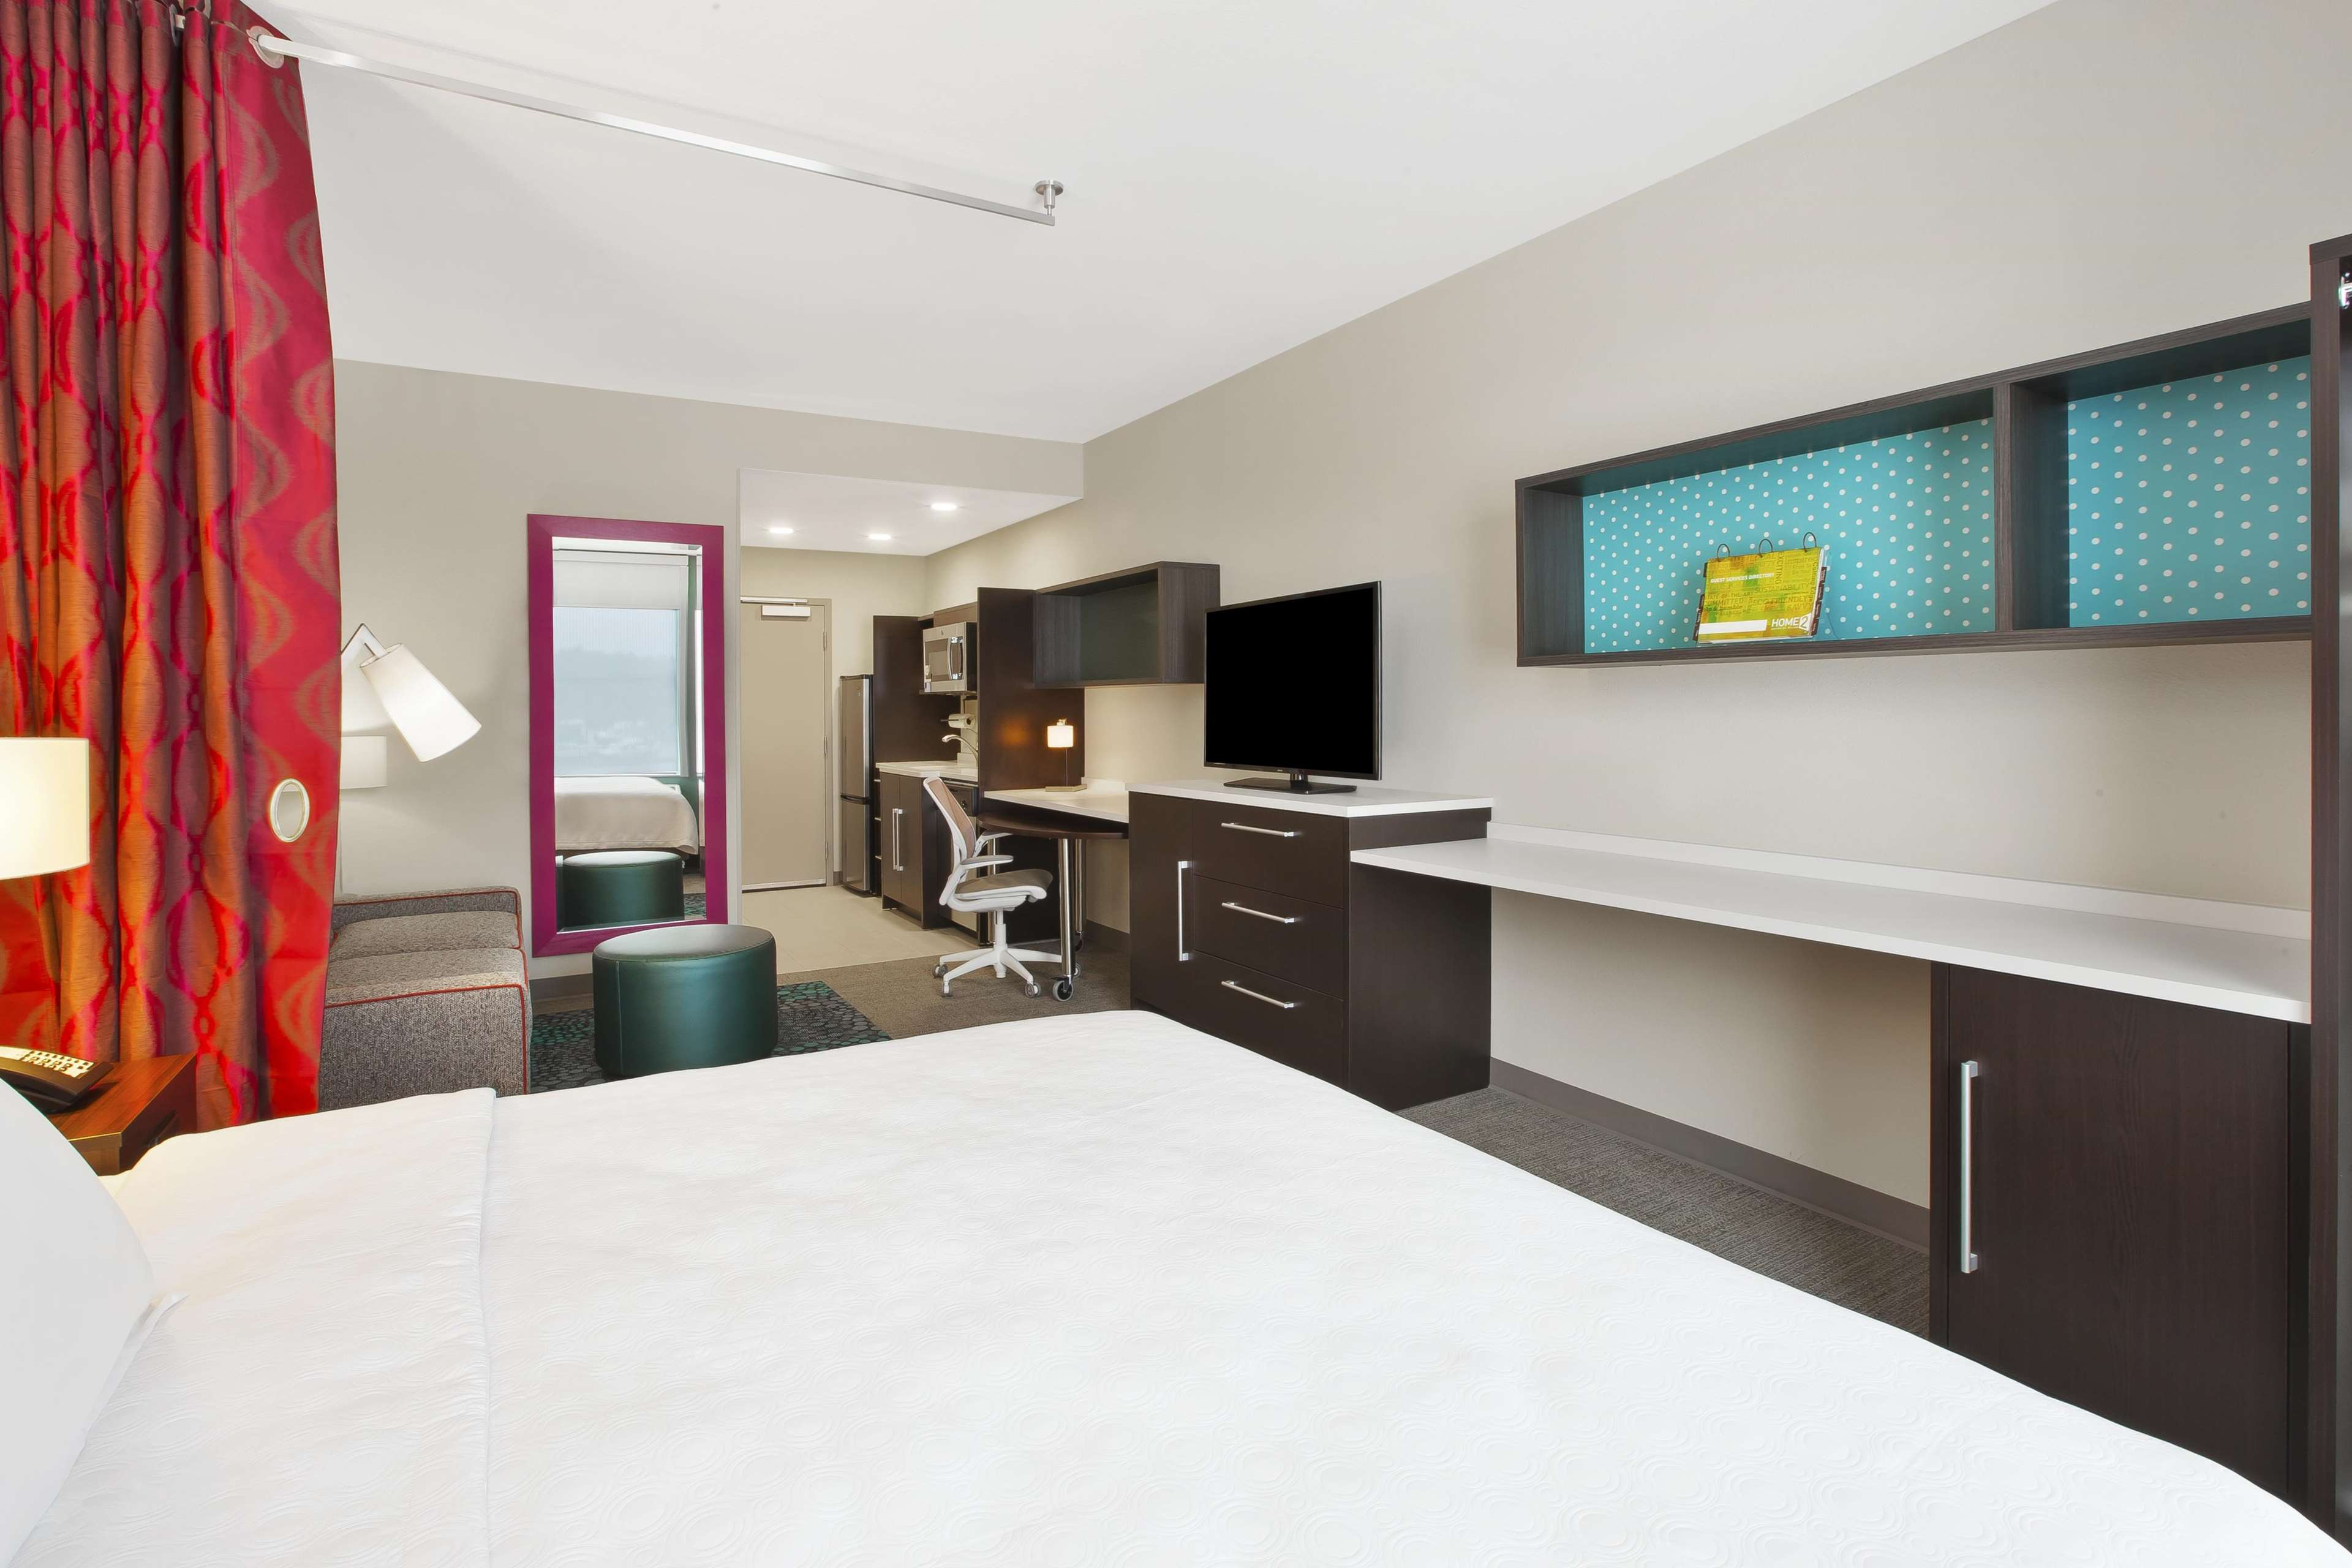 Home2 Suites by Hilton Holland image 11